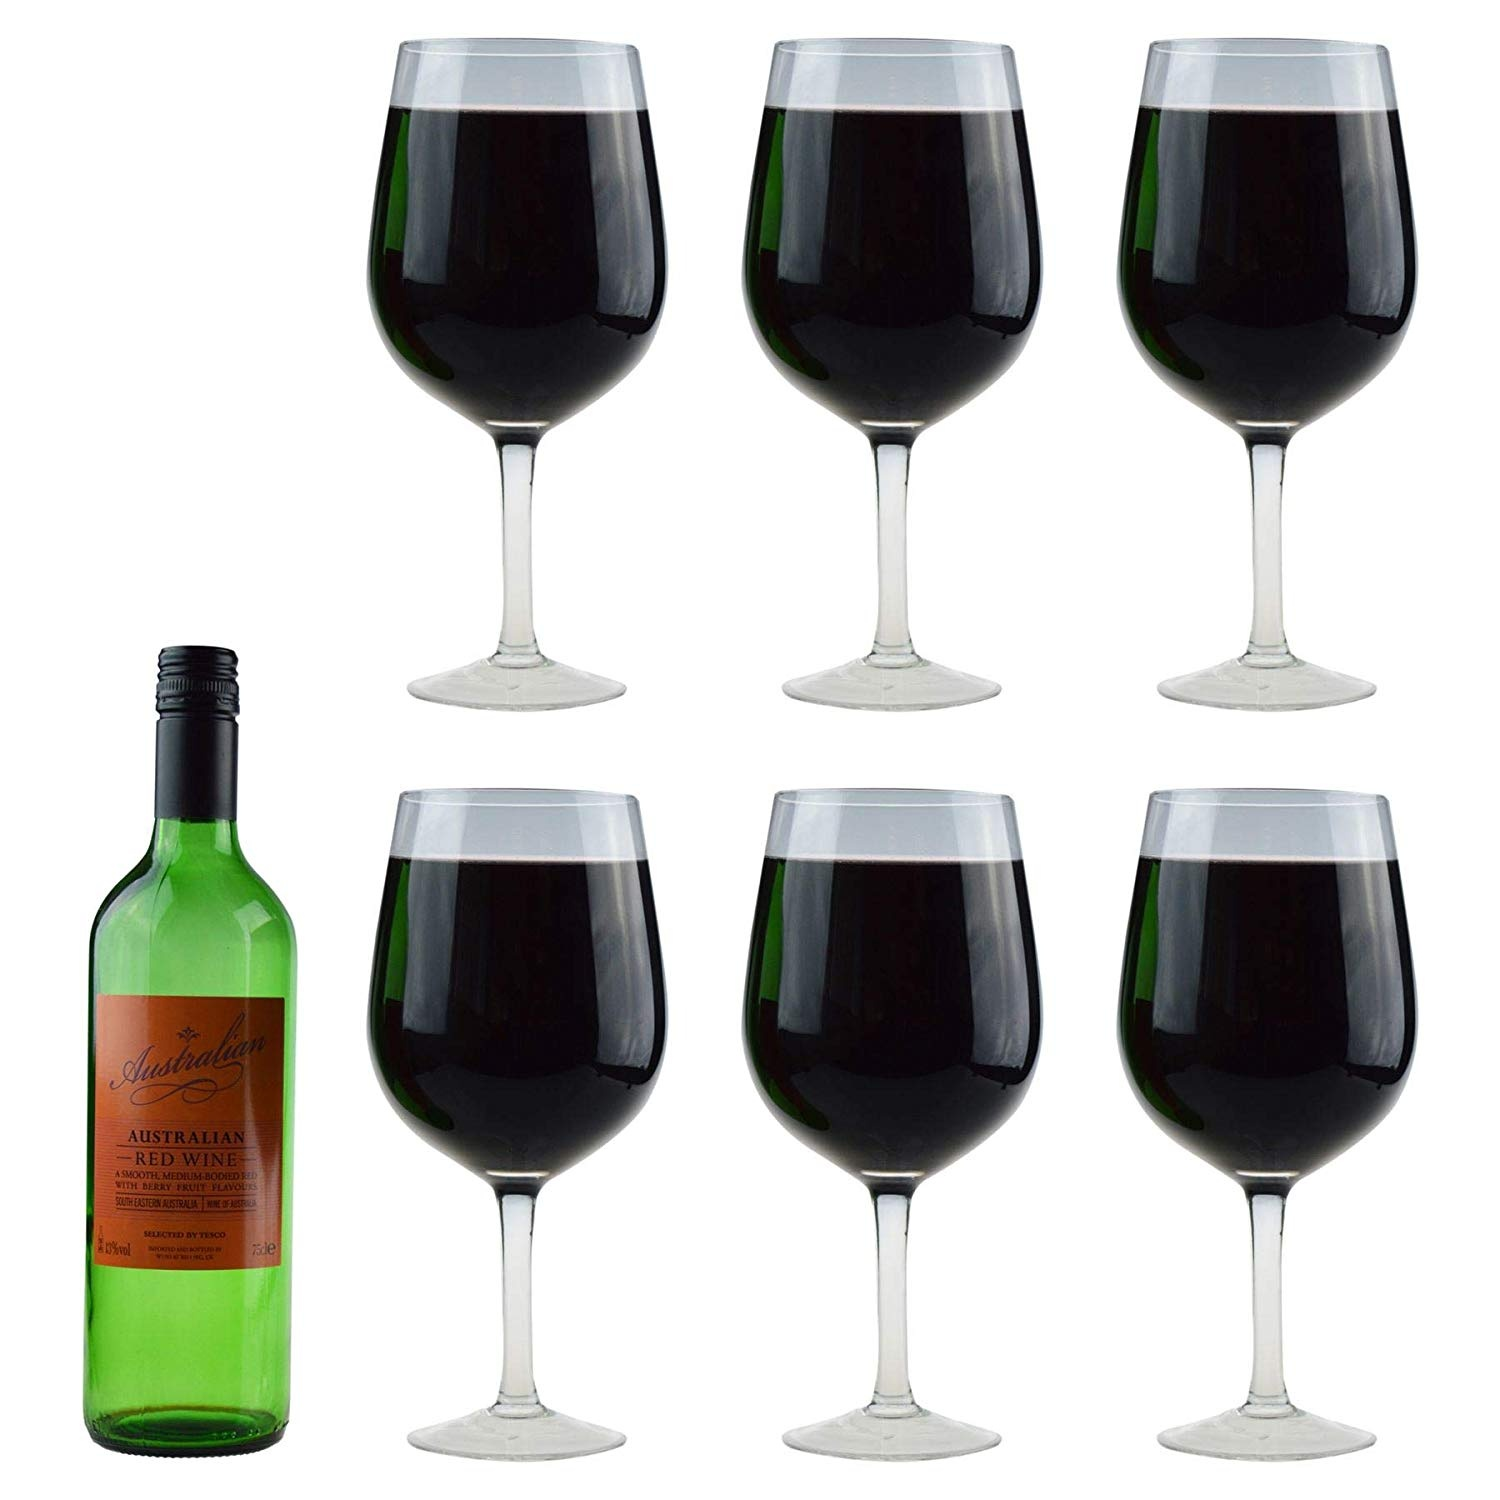 cd0507b06484 Rink Drink Giant Wine Glass - 750ml Full Bottle Wine Glass - Pack of 6 by  Rink Drink - Shop Online for Kitchen in Australia